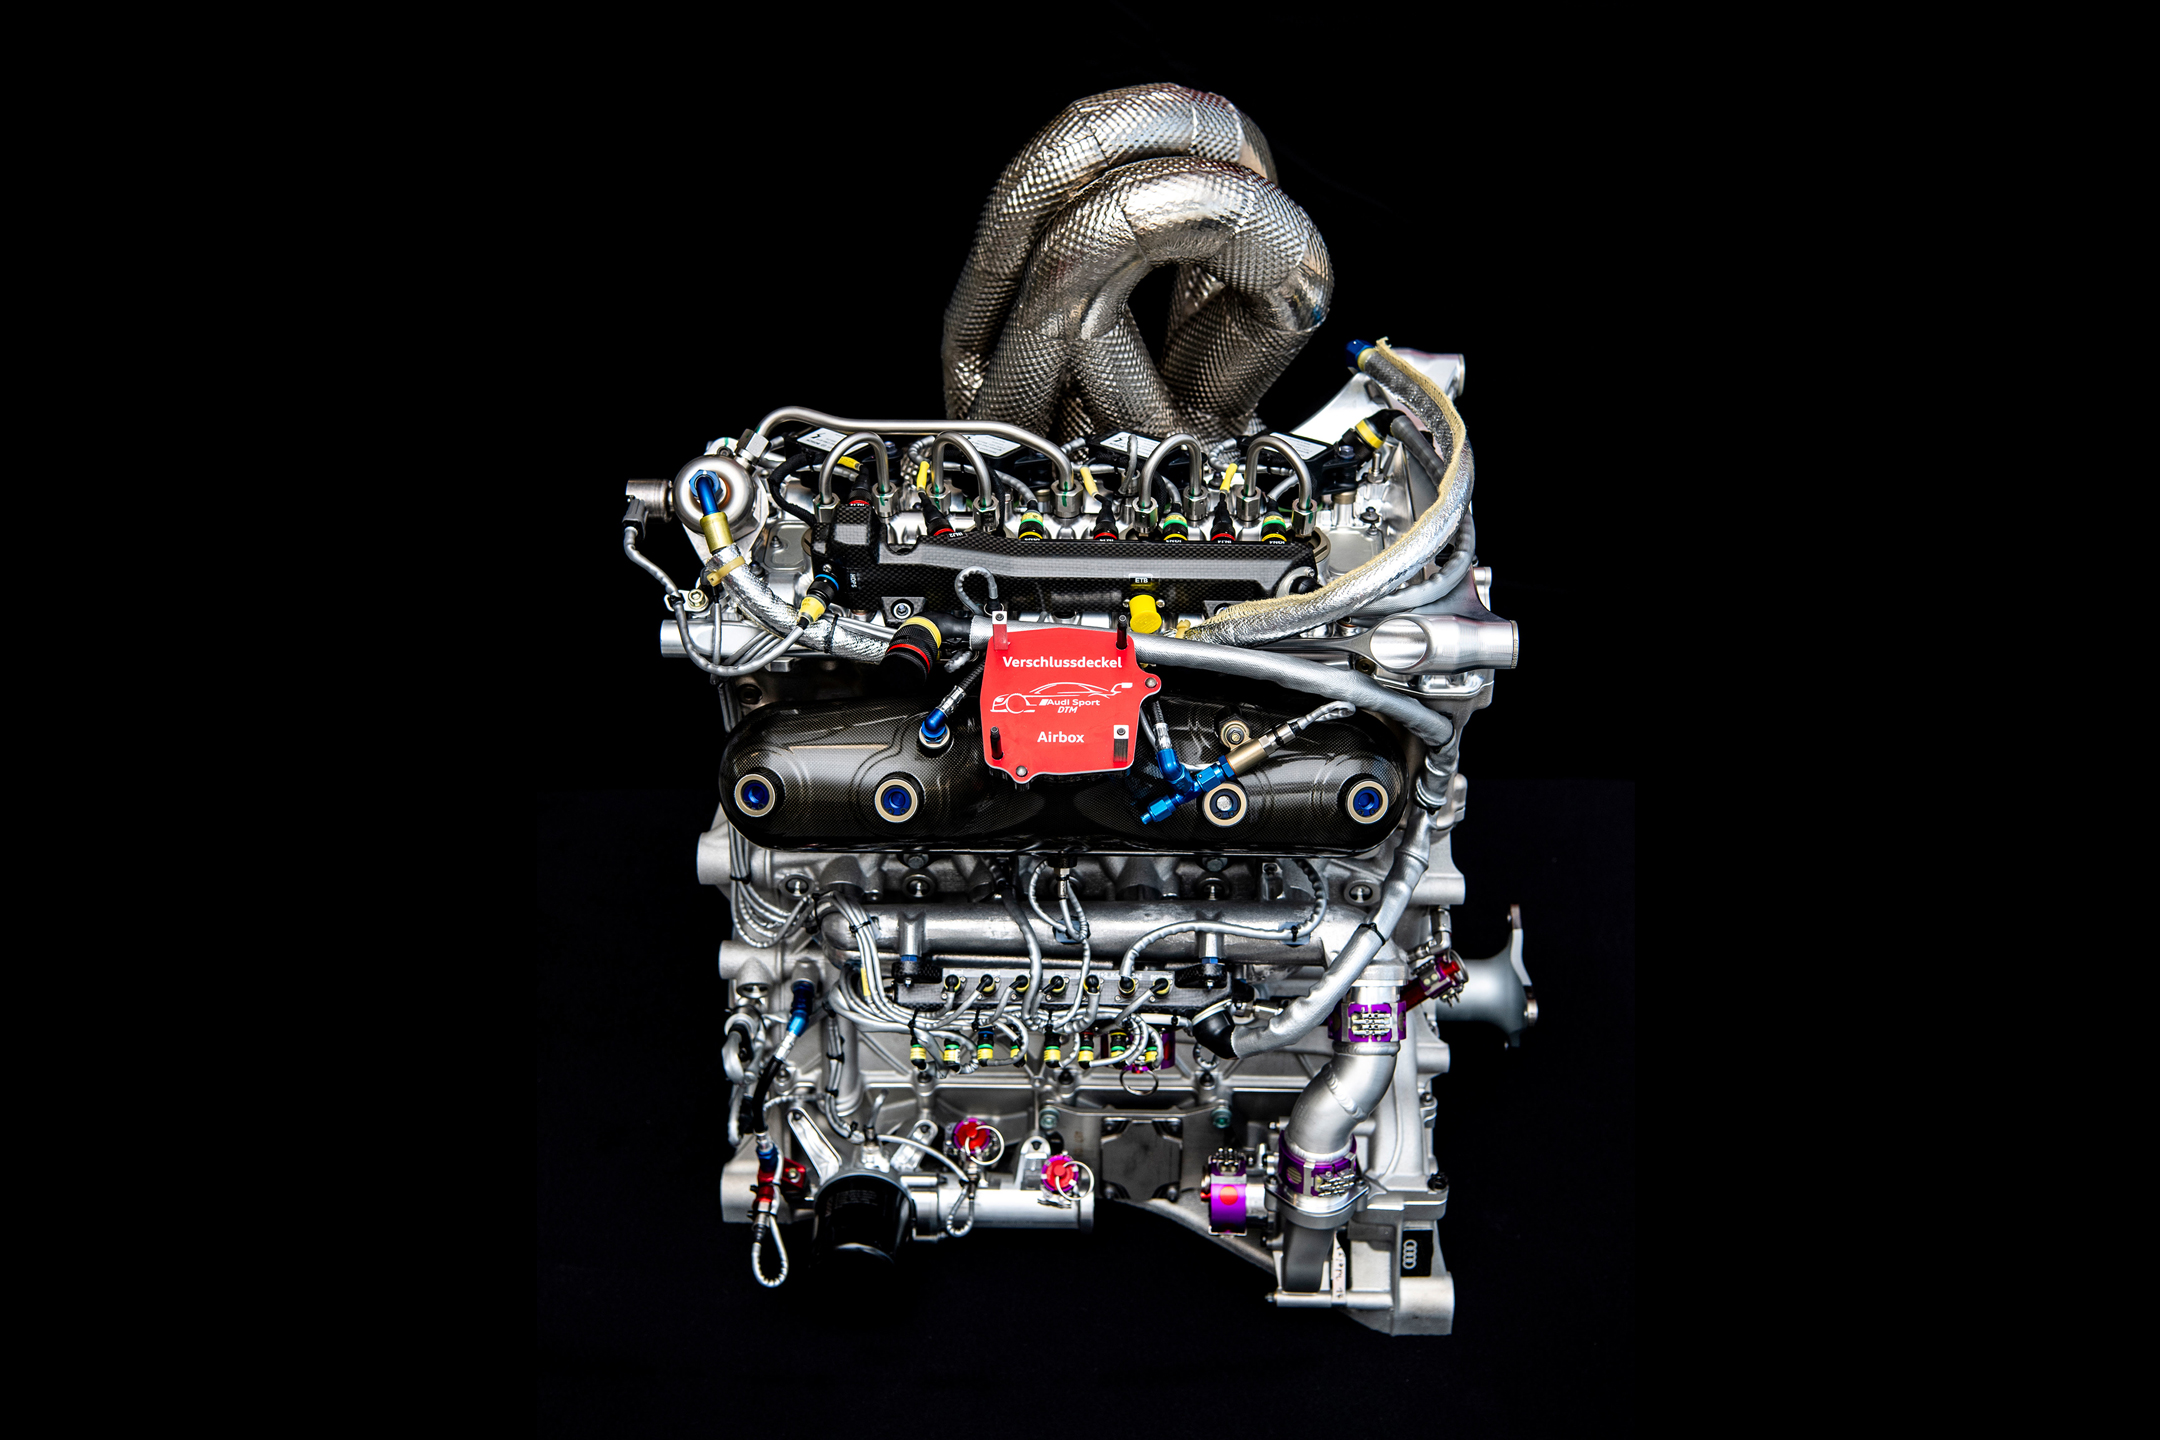 Audi Sport - DTM - 2019 - engine / moteur - two-liter four-cylinder / 2.0L TFSI 4 cylindres